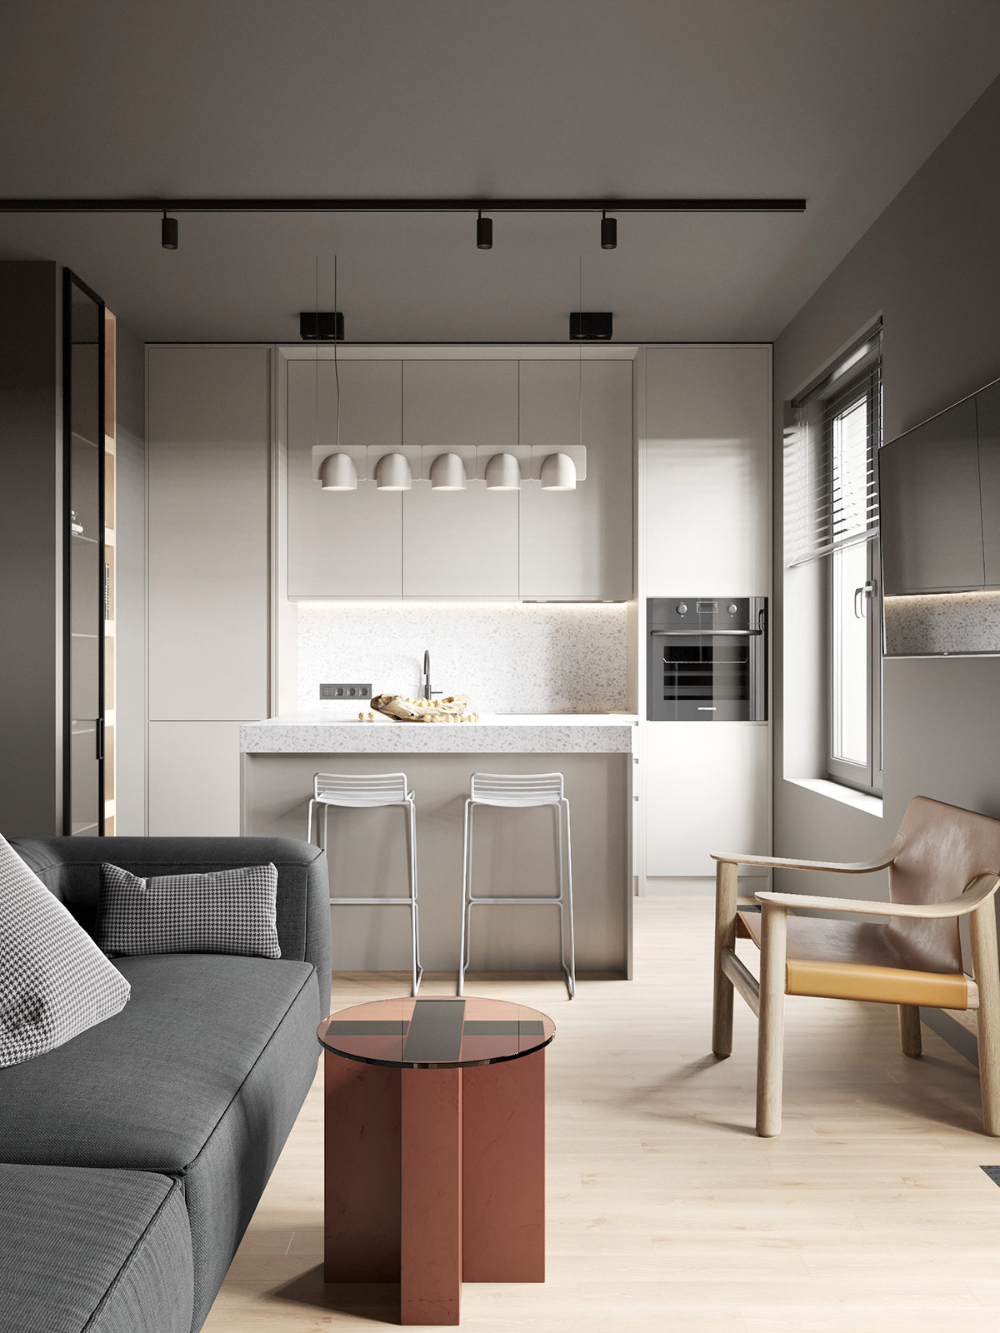 Creating Comfortable Living Spaces in a Modern Minimalist ...